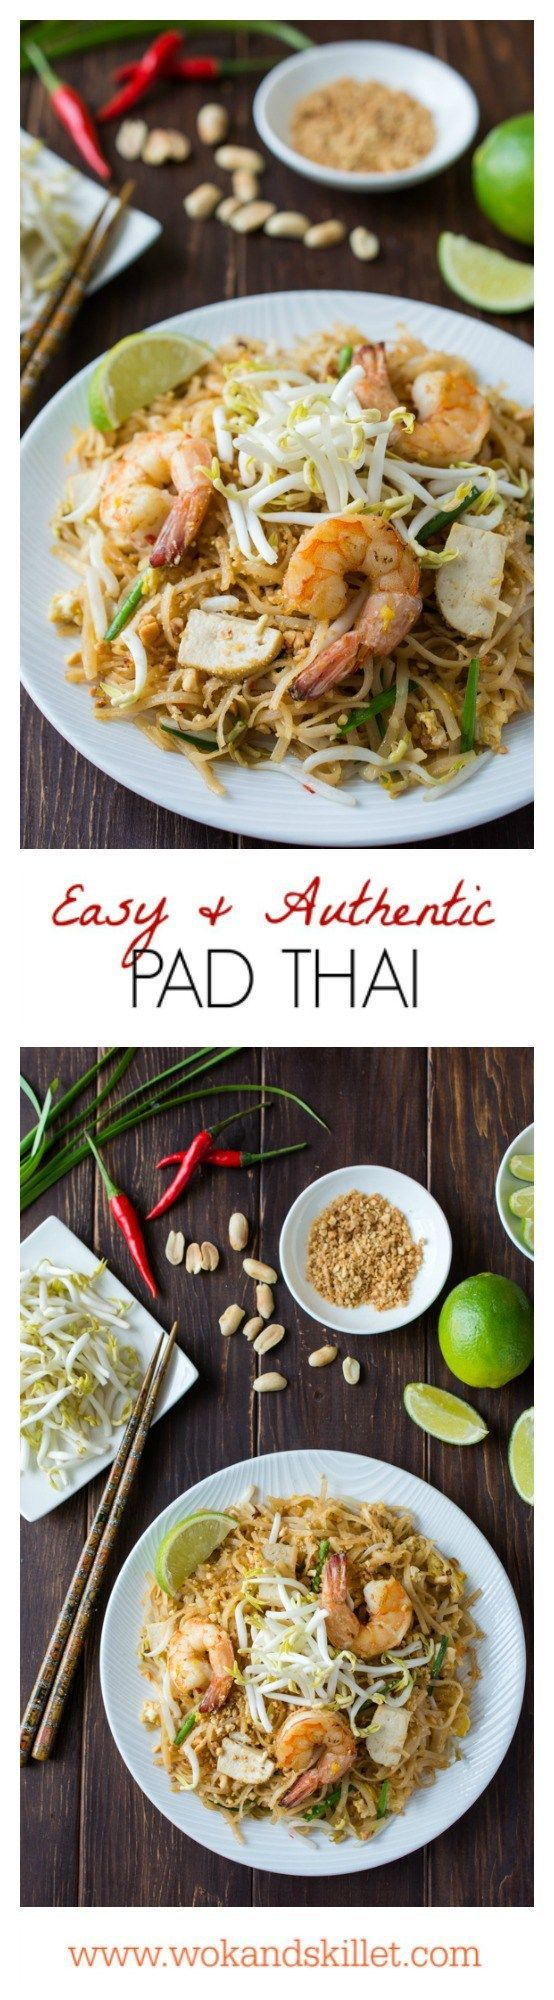 Best 25 stir fry with rice noodles ideas on pinterest stir fry authentic pad thai made easy stir fried rice noodles in a slightly sweet and ethnic recipesasian food forumfinder Gallery